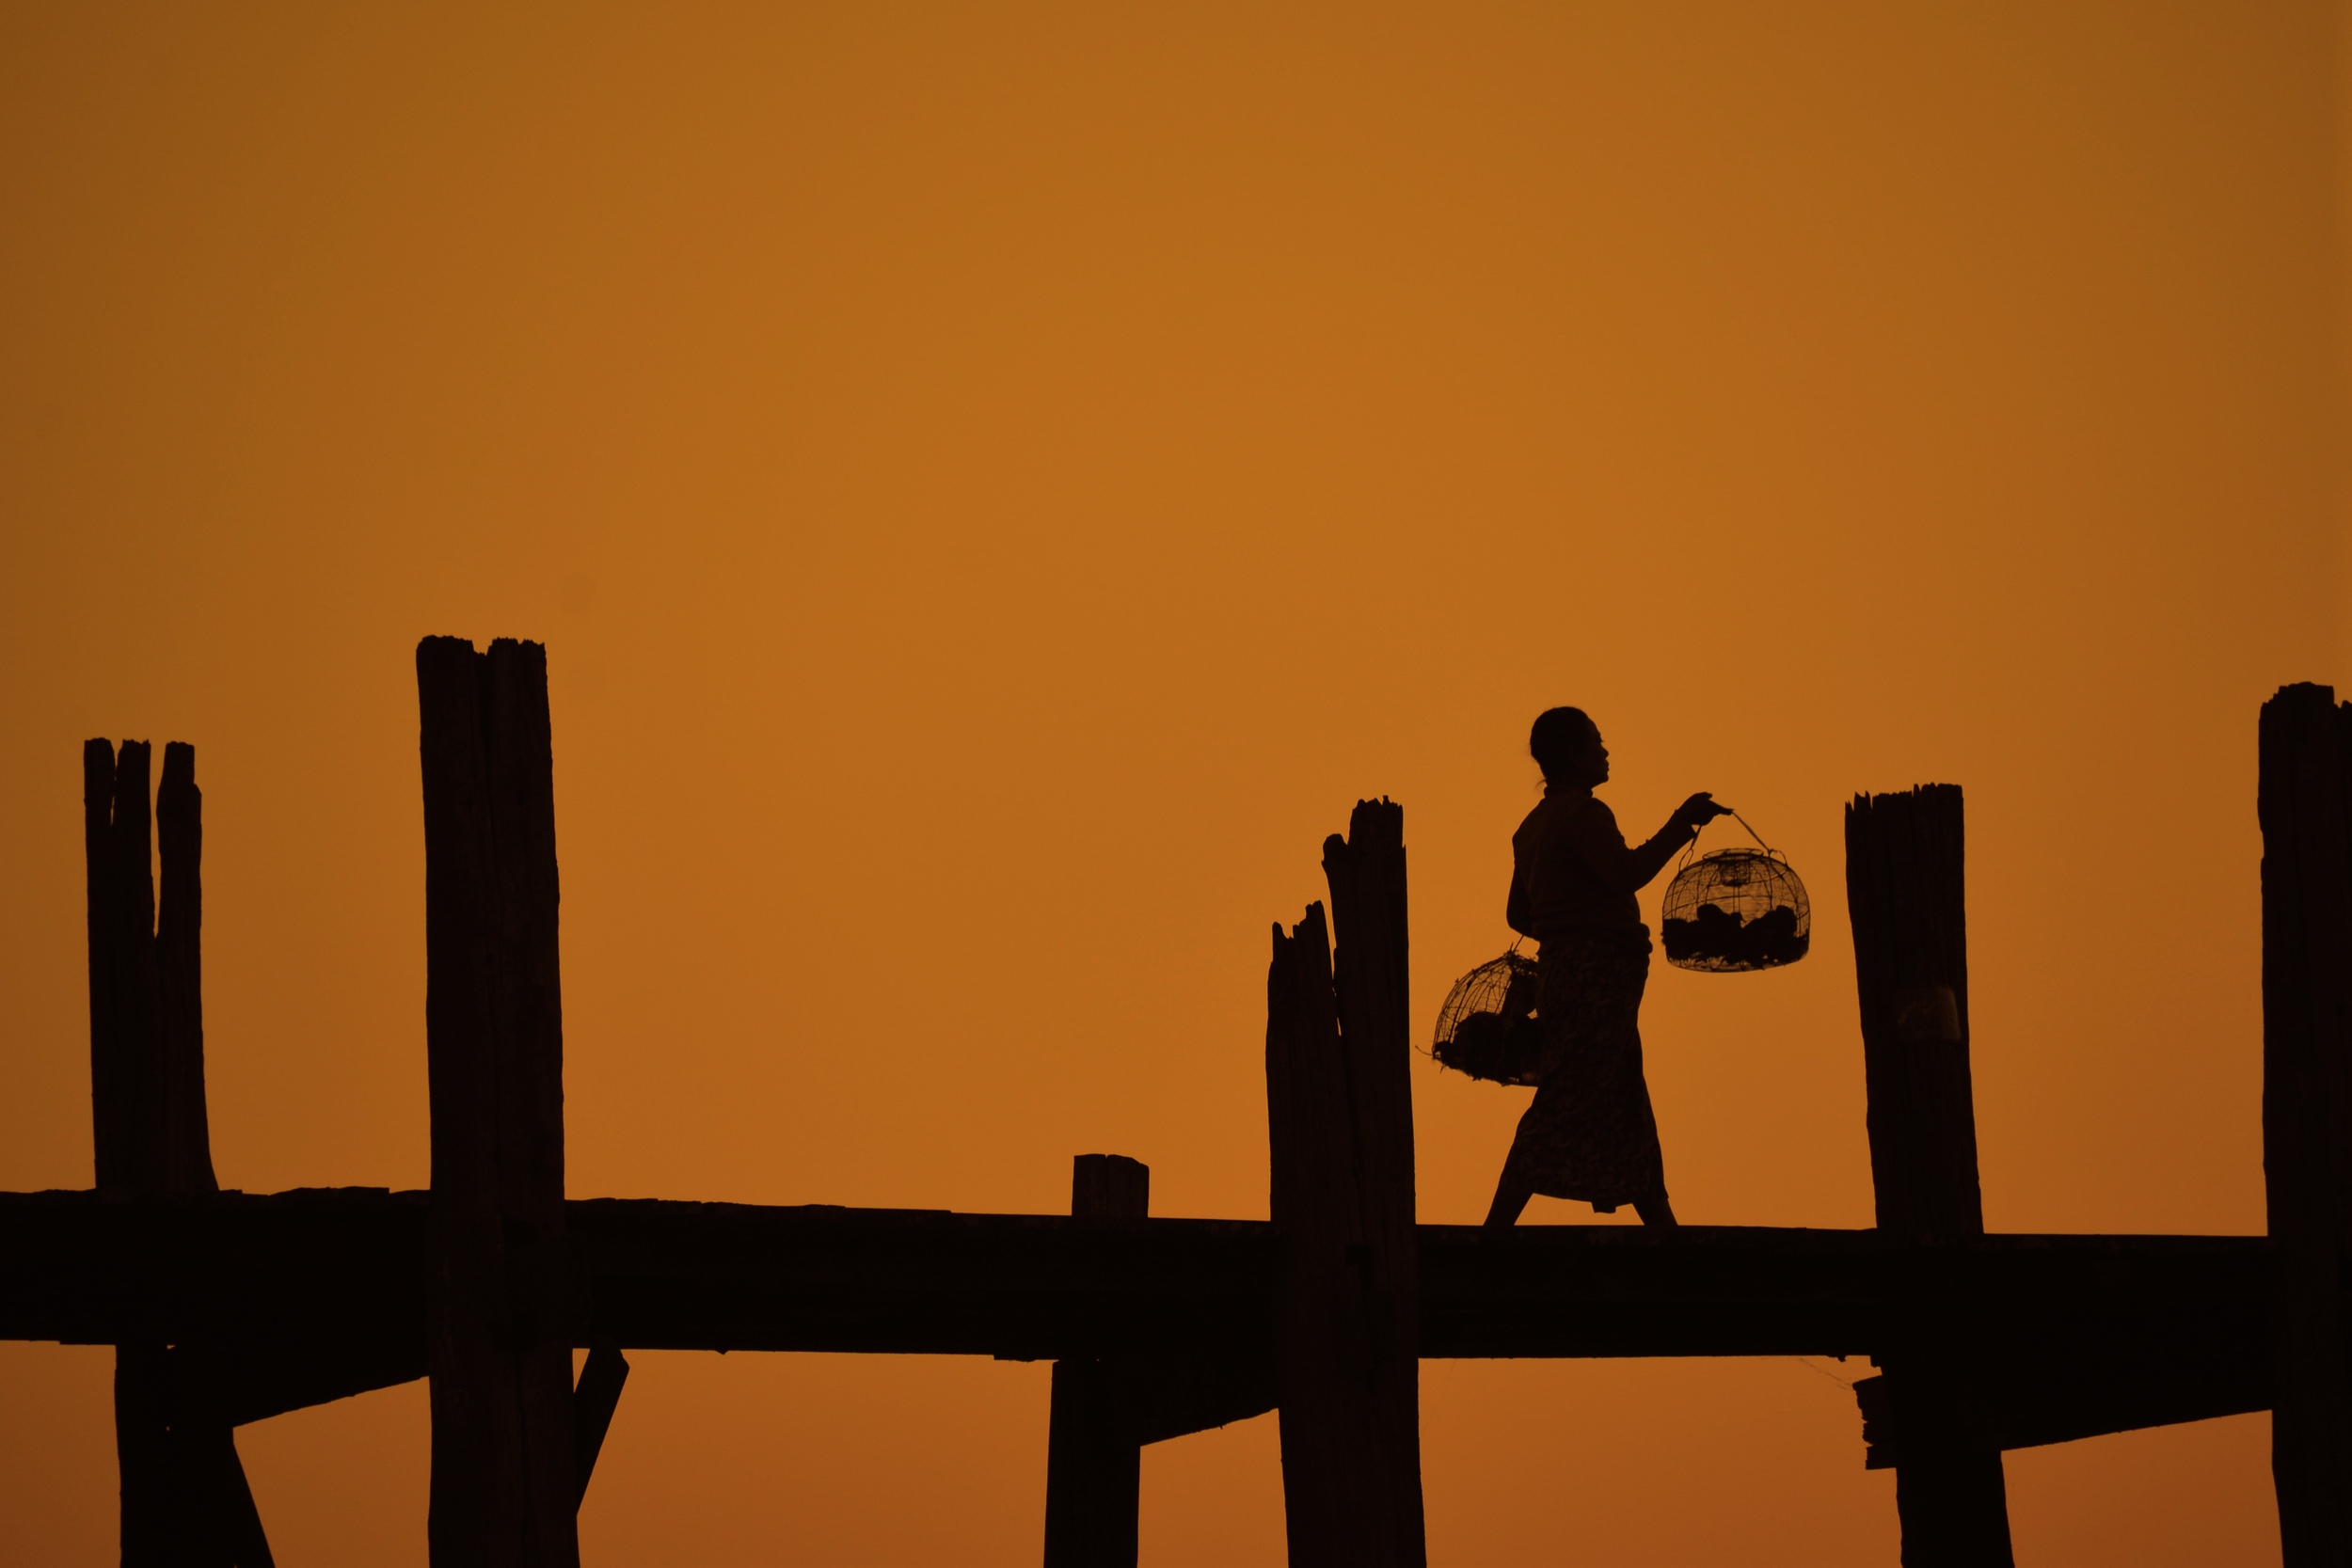 U-Bein_Bridge_002.JPG